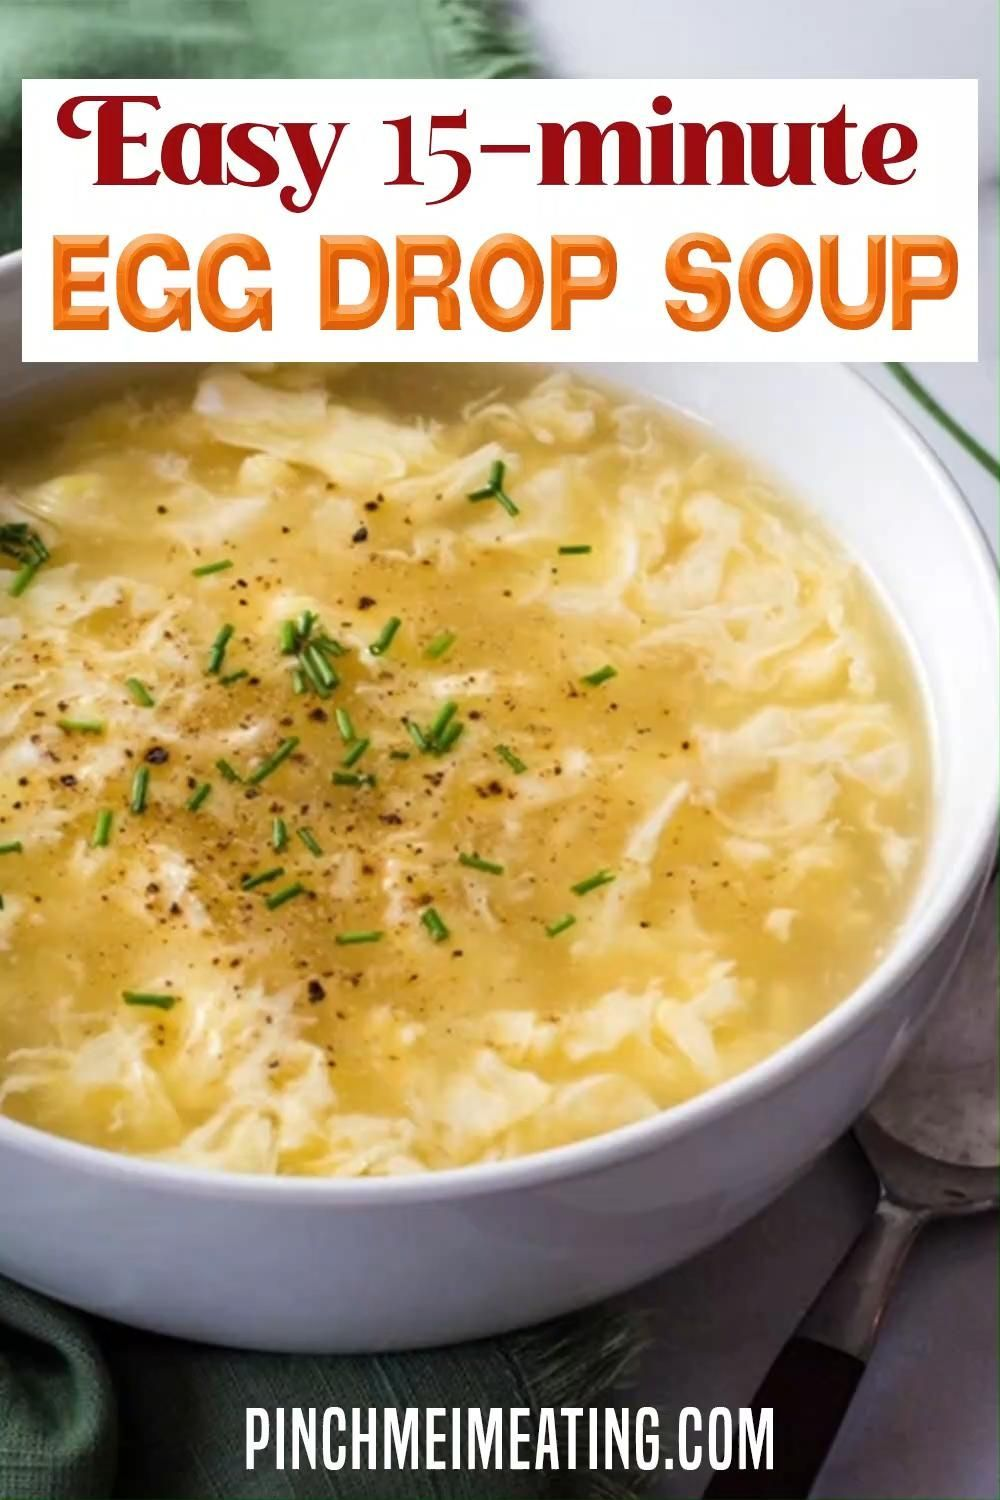 Reastaurant Style Easy 15-Minute Egg Drop Soup Rec